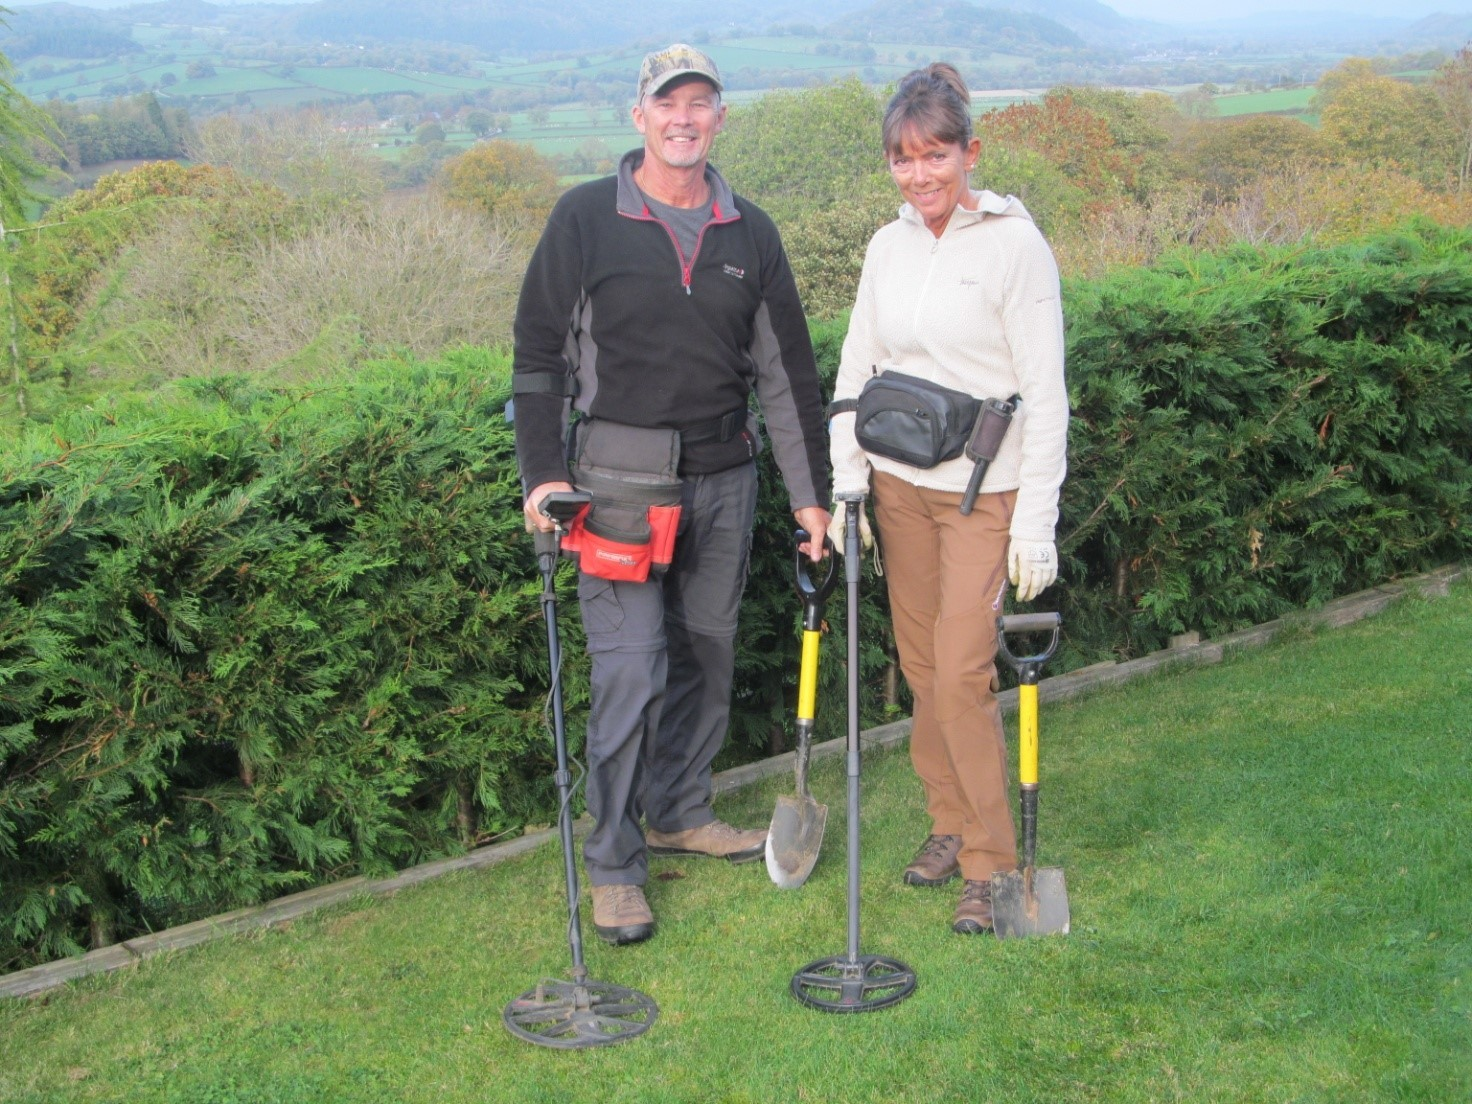 Mike and Trish will talk about metal detecting at the Meifod History Group's first meeting of 2019